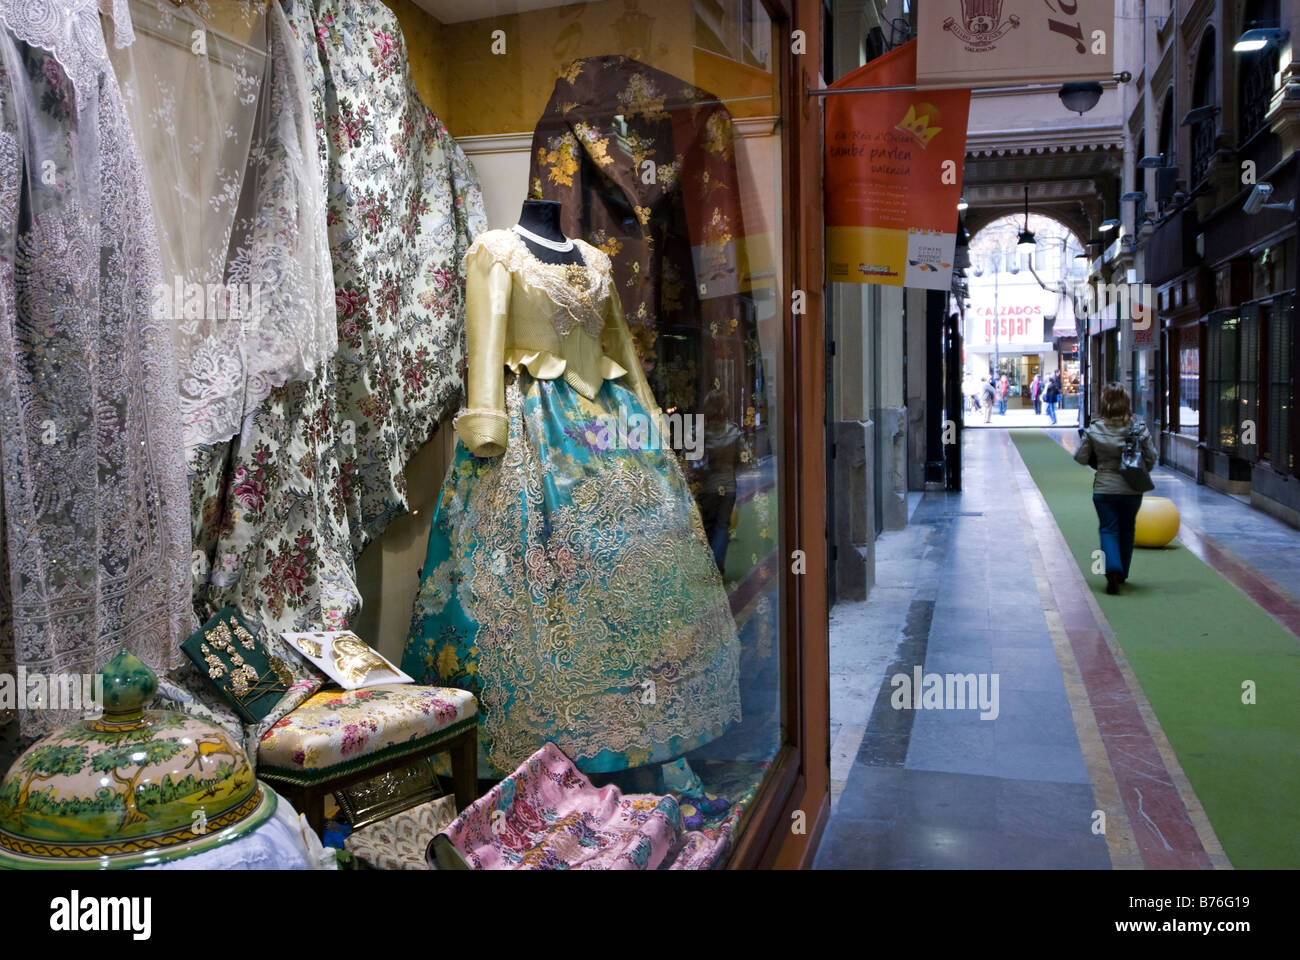 Window display of traditional Spanish costume dress shop in the historical city centre of Valencia Spain - Stock Image